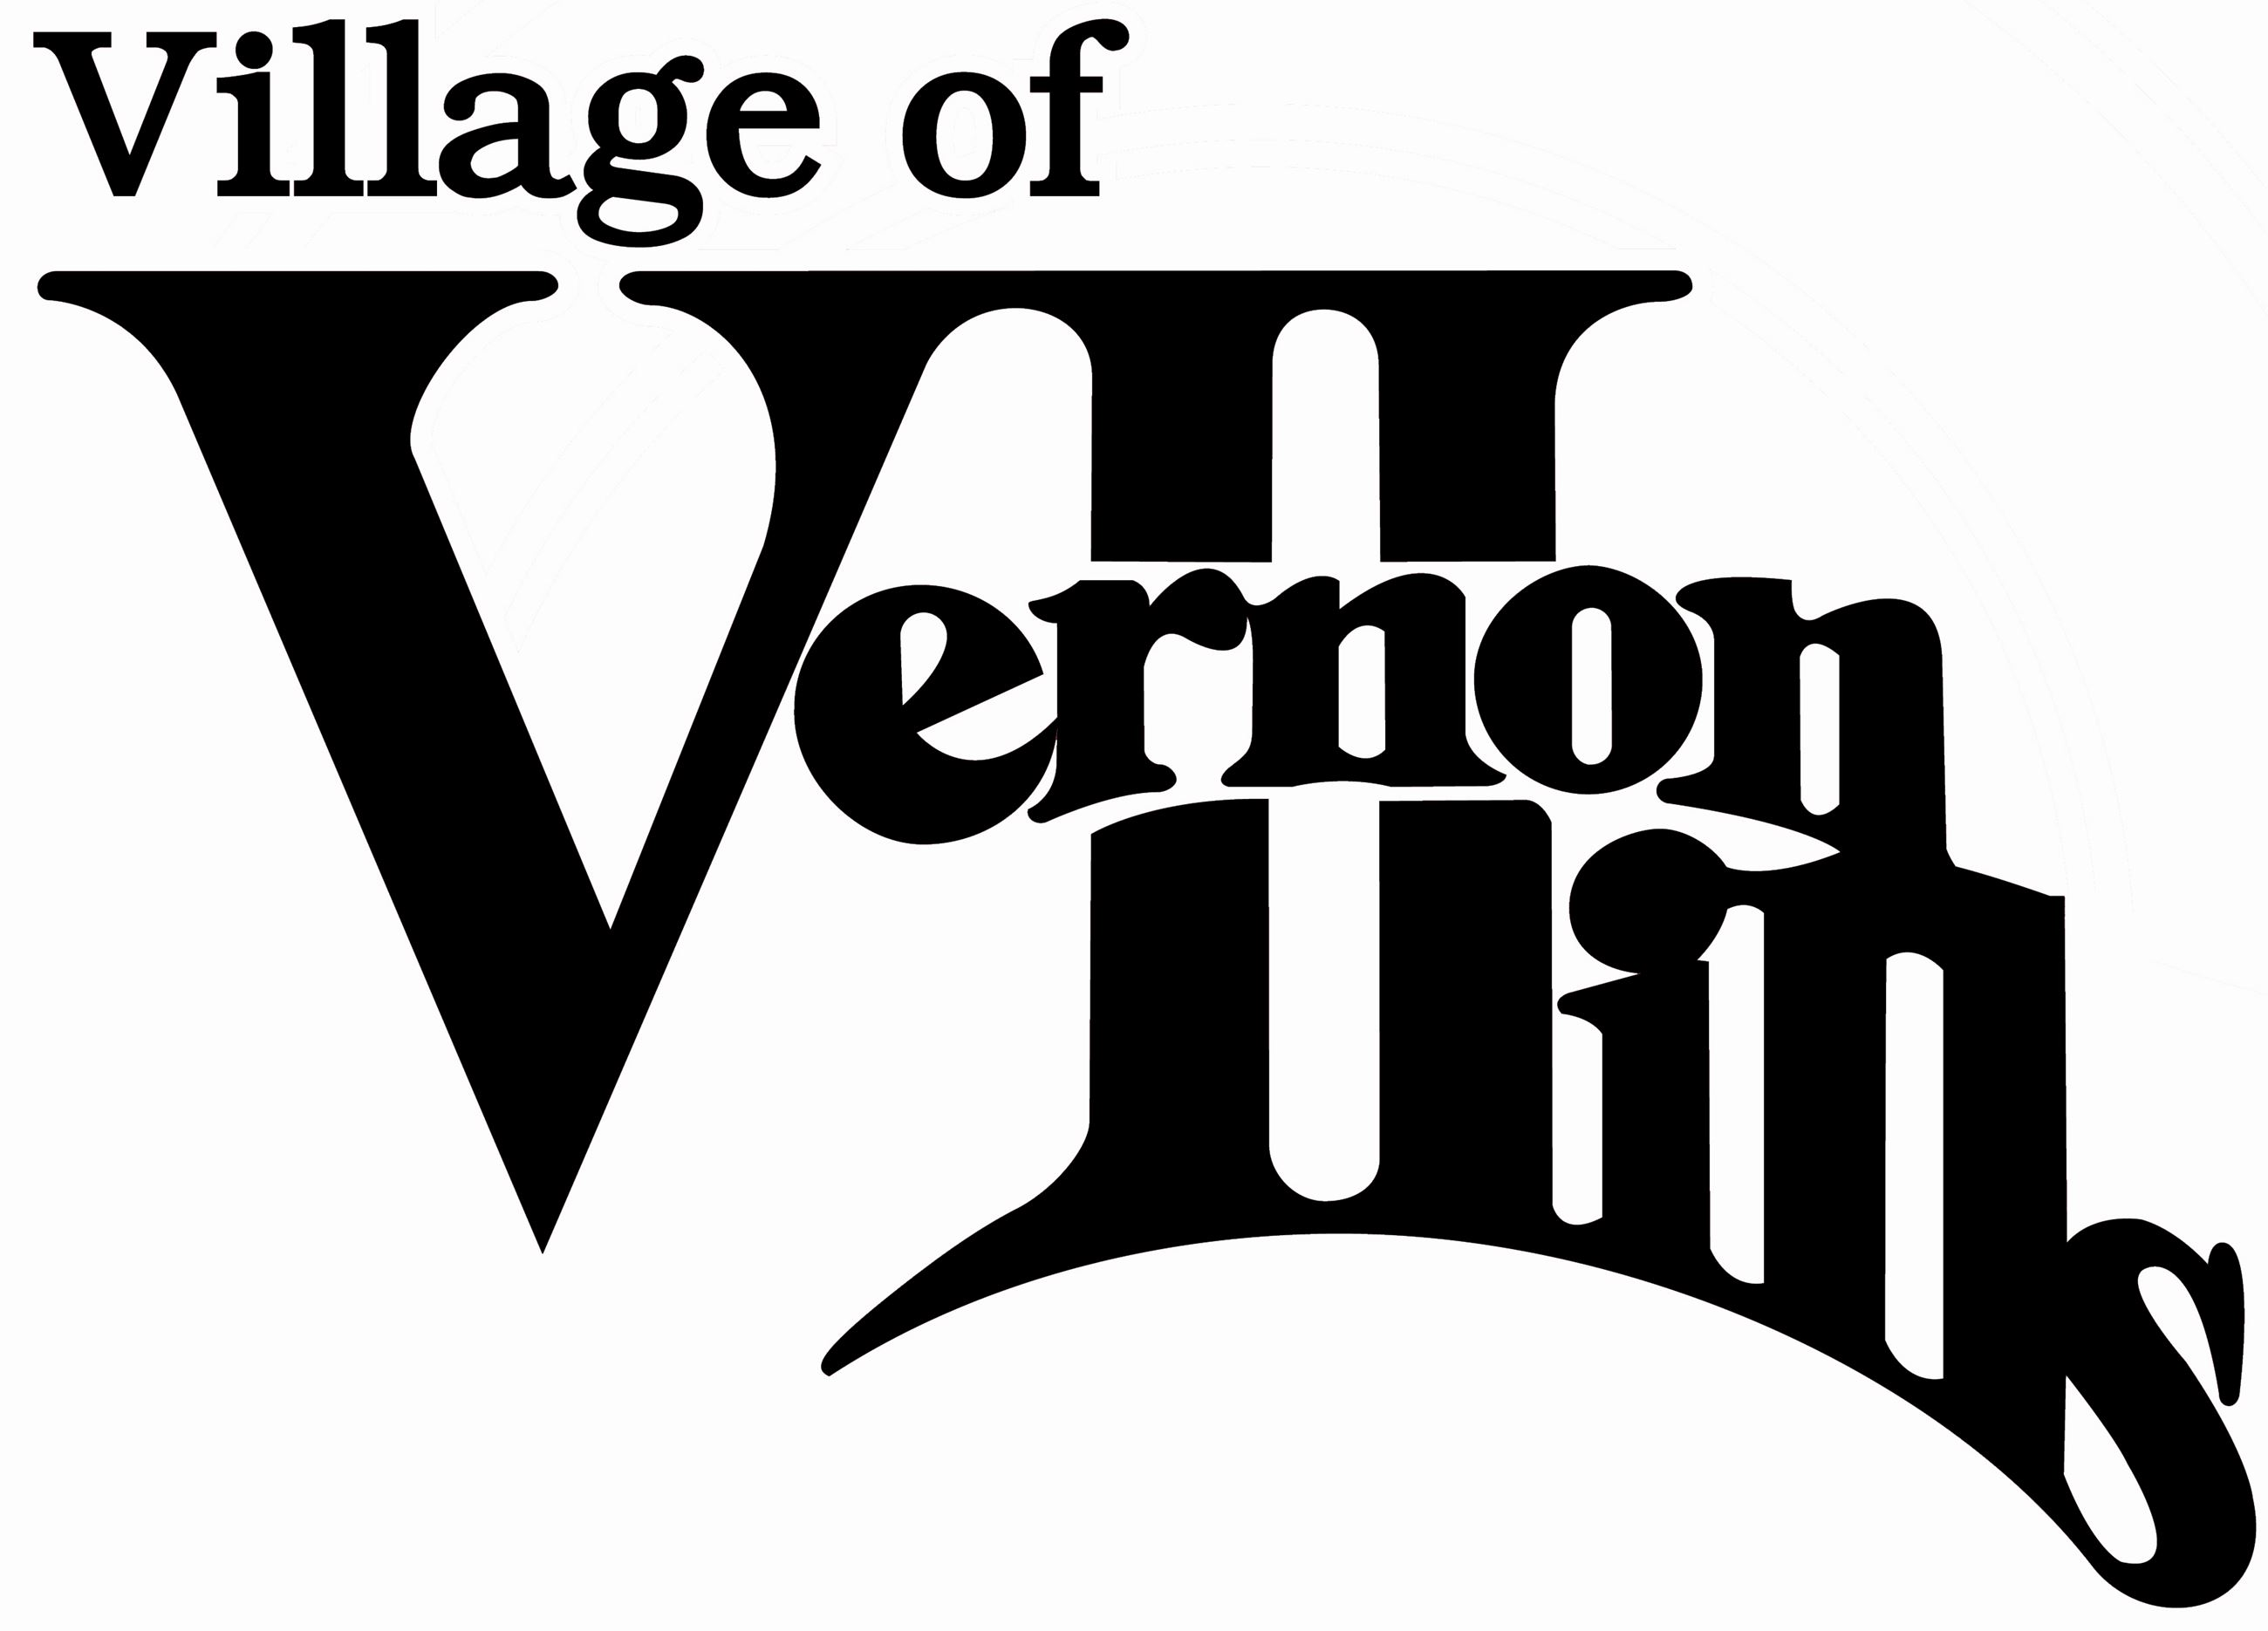 VILLAGE-LOGO-High_resolution